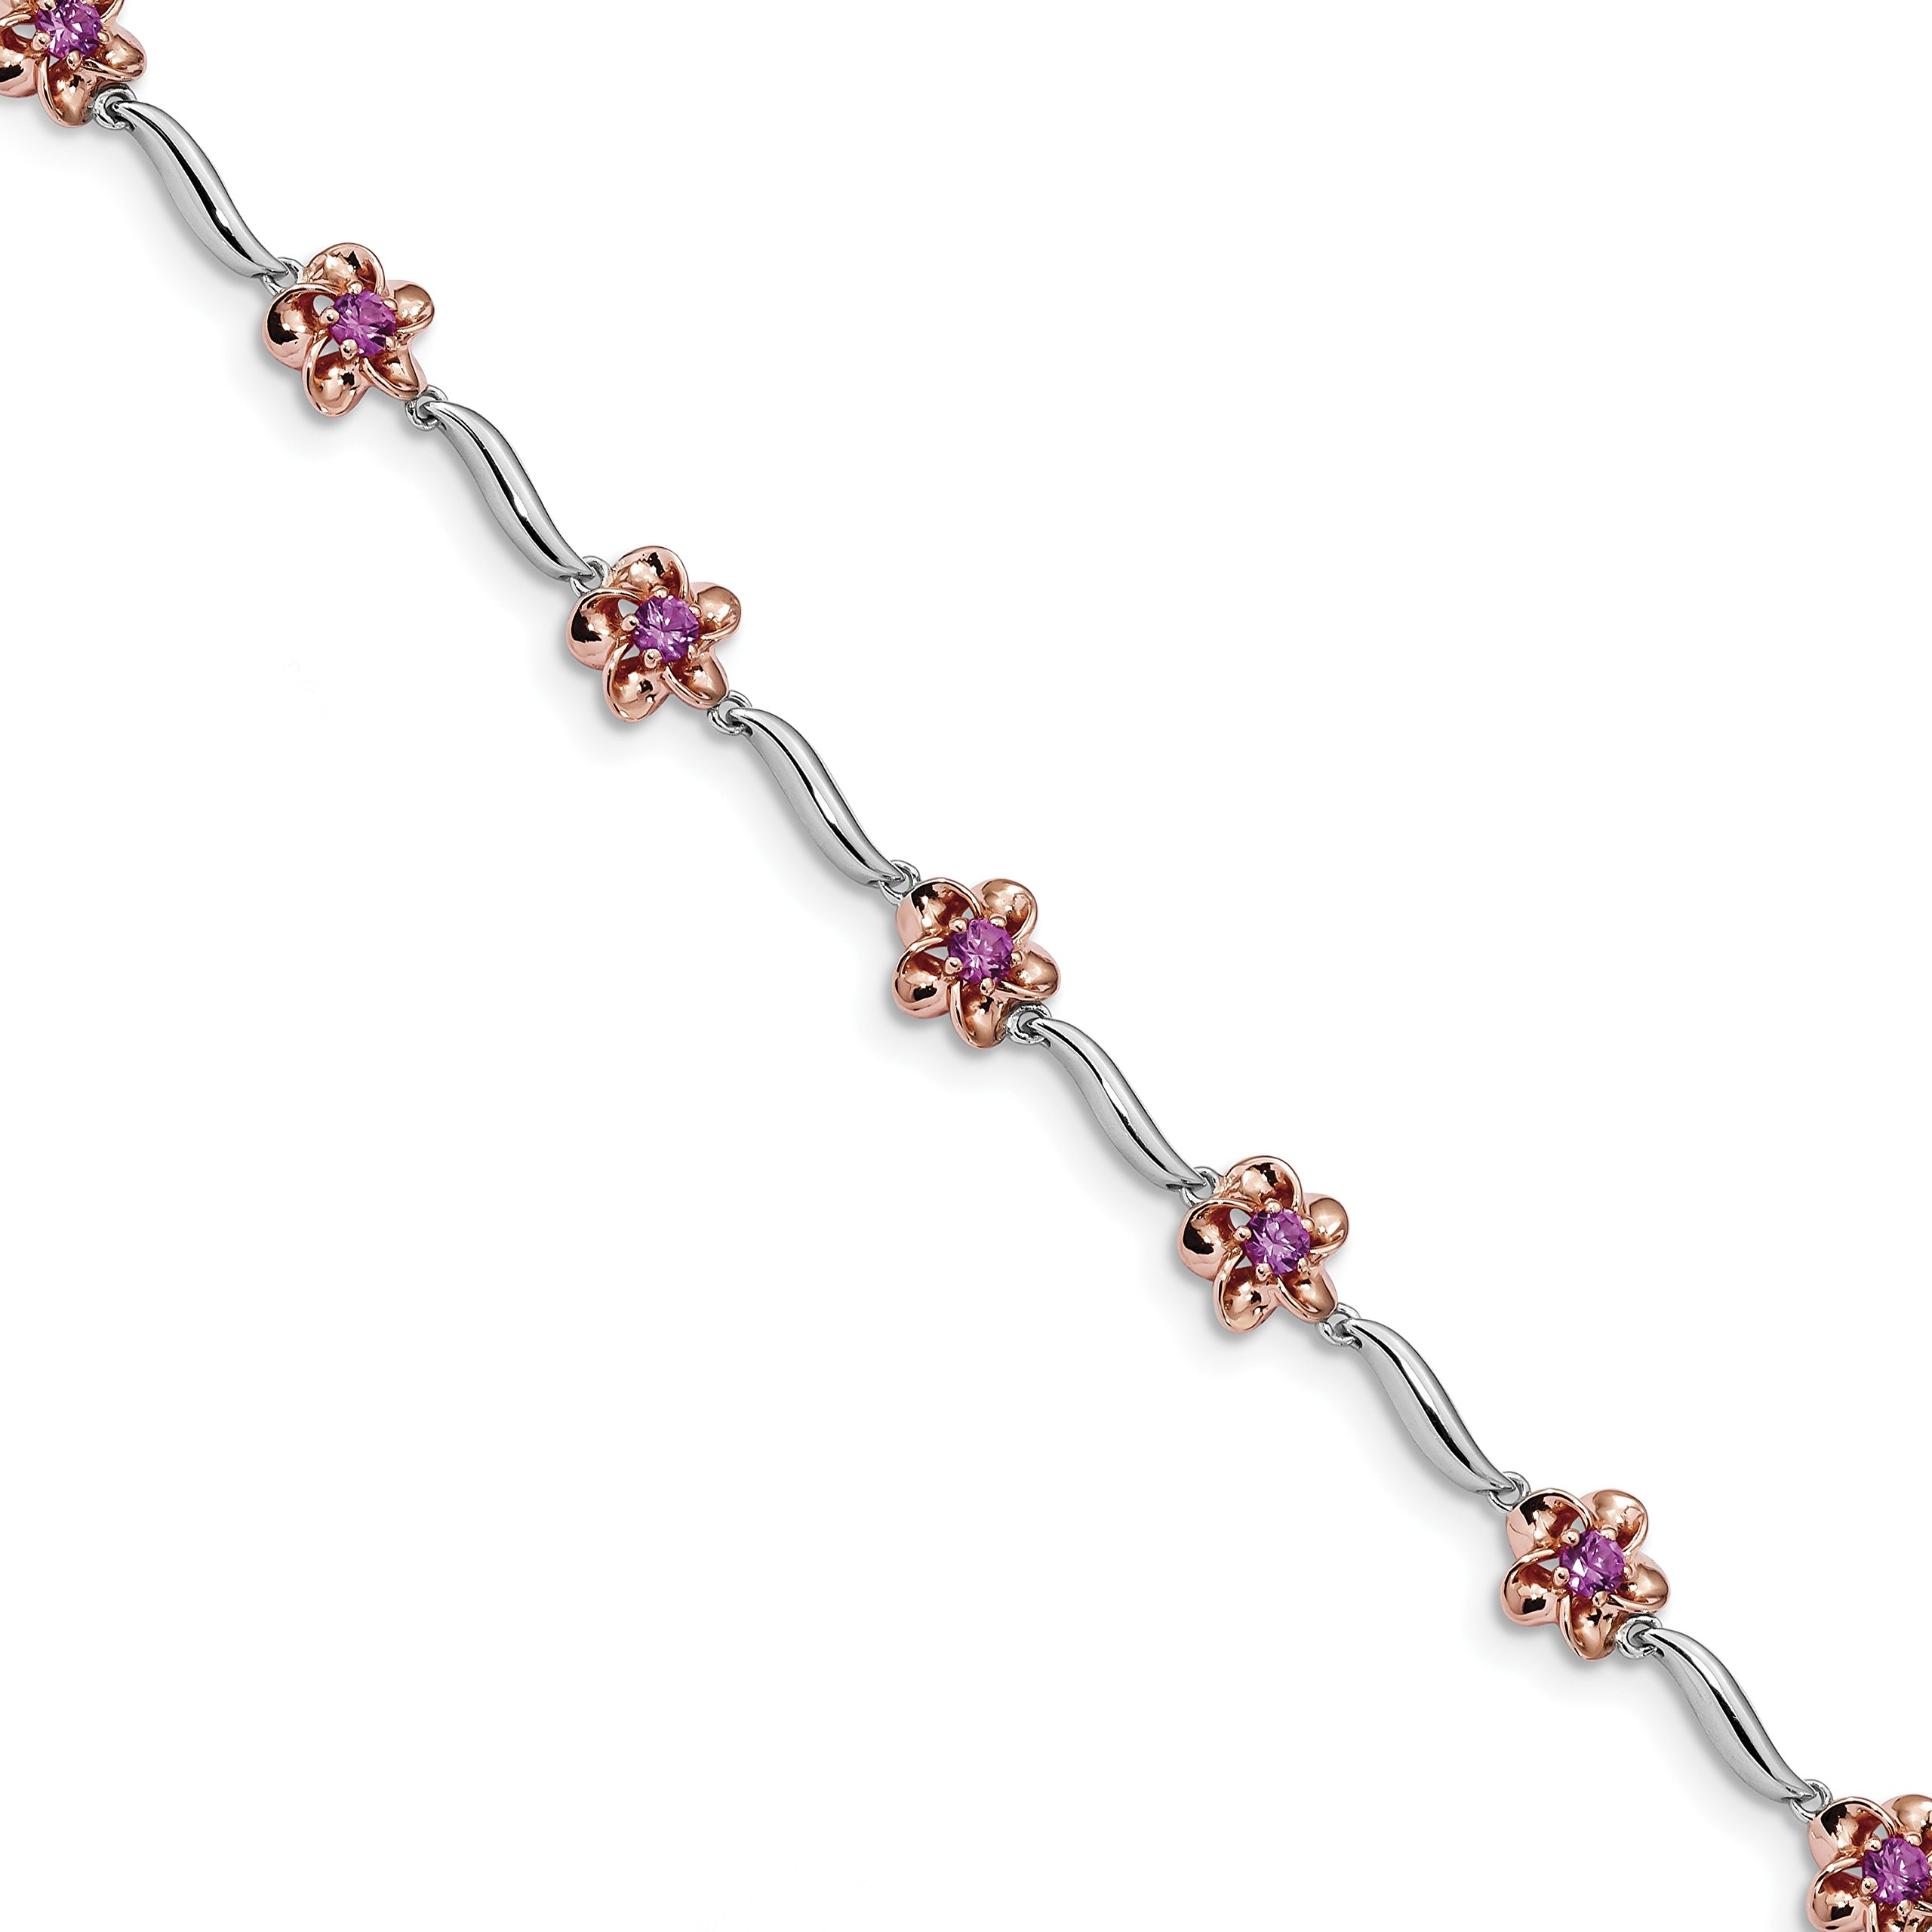 ICE CARATS 925 Sterling Silver Rose Tone Created Pink Sapphire Bracelet 7.5 Inch Gemstone Fine Jewelry Gift Set For Women Heart